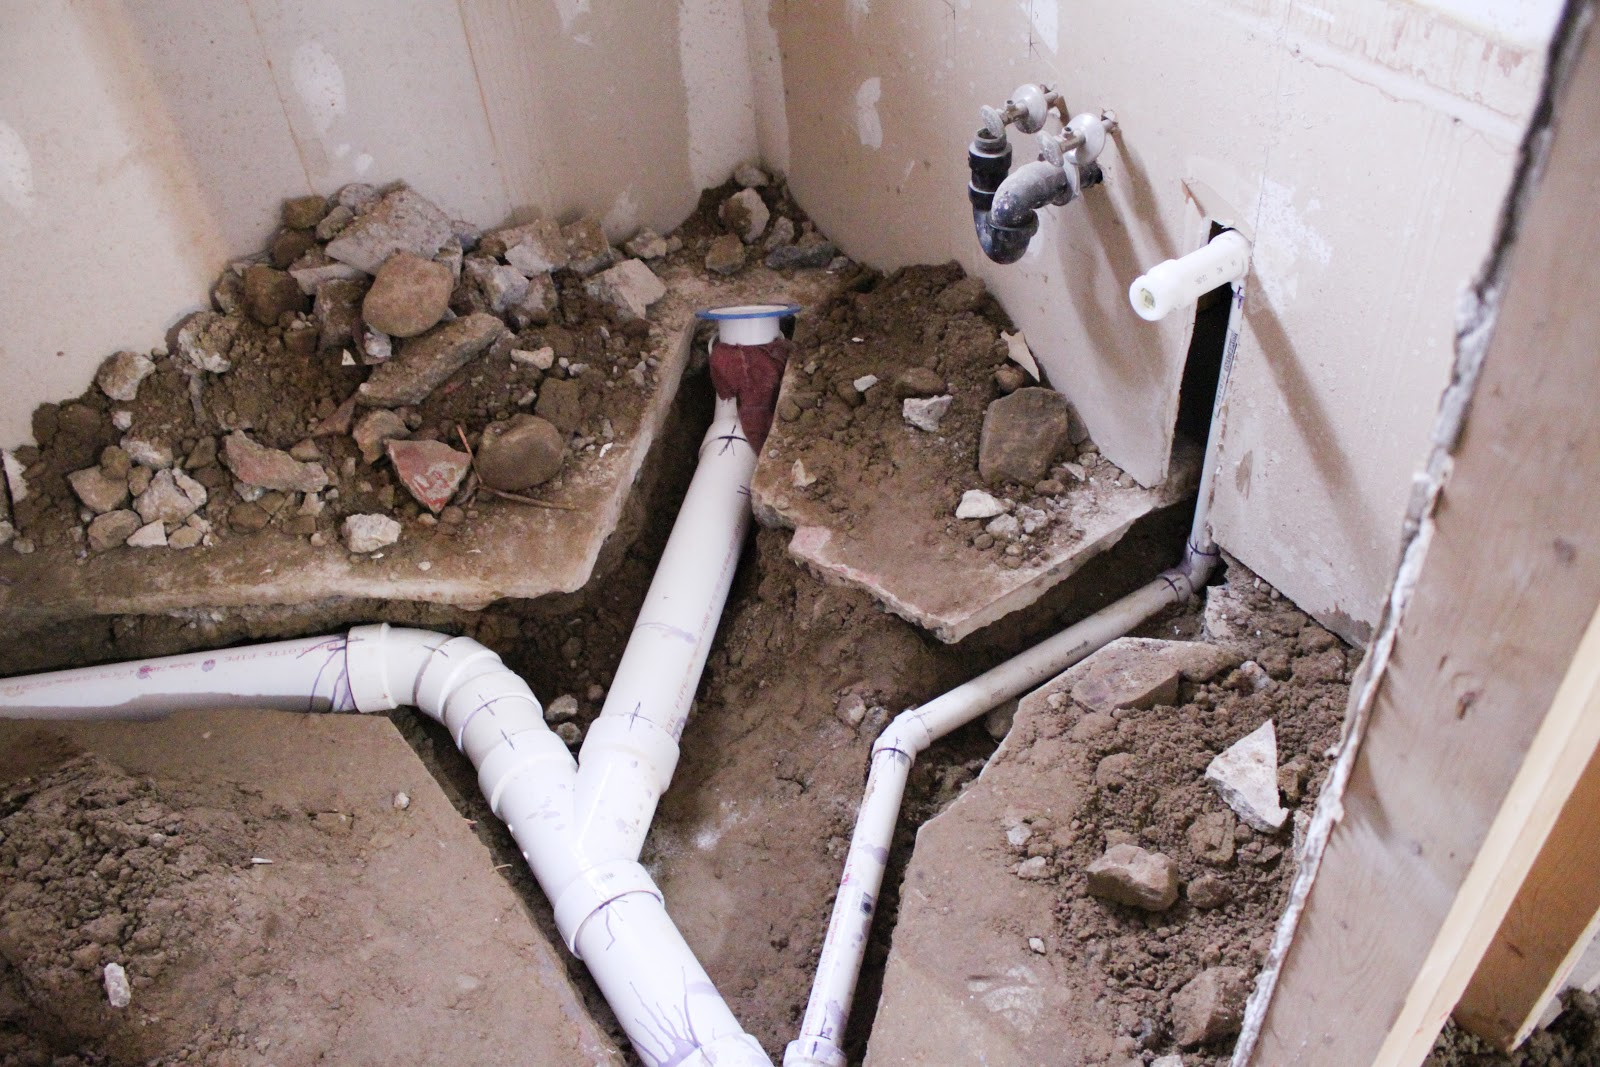 Lighting Basement Washroom Stairs: Digging Holes And Playing In The Dirt...In The Basement